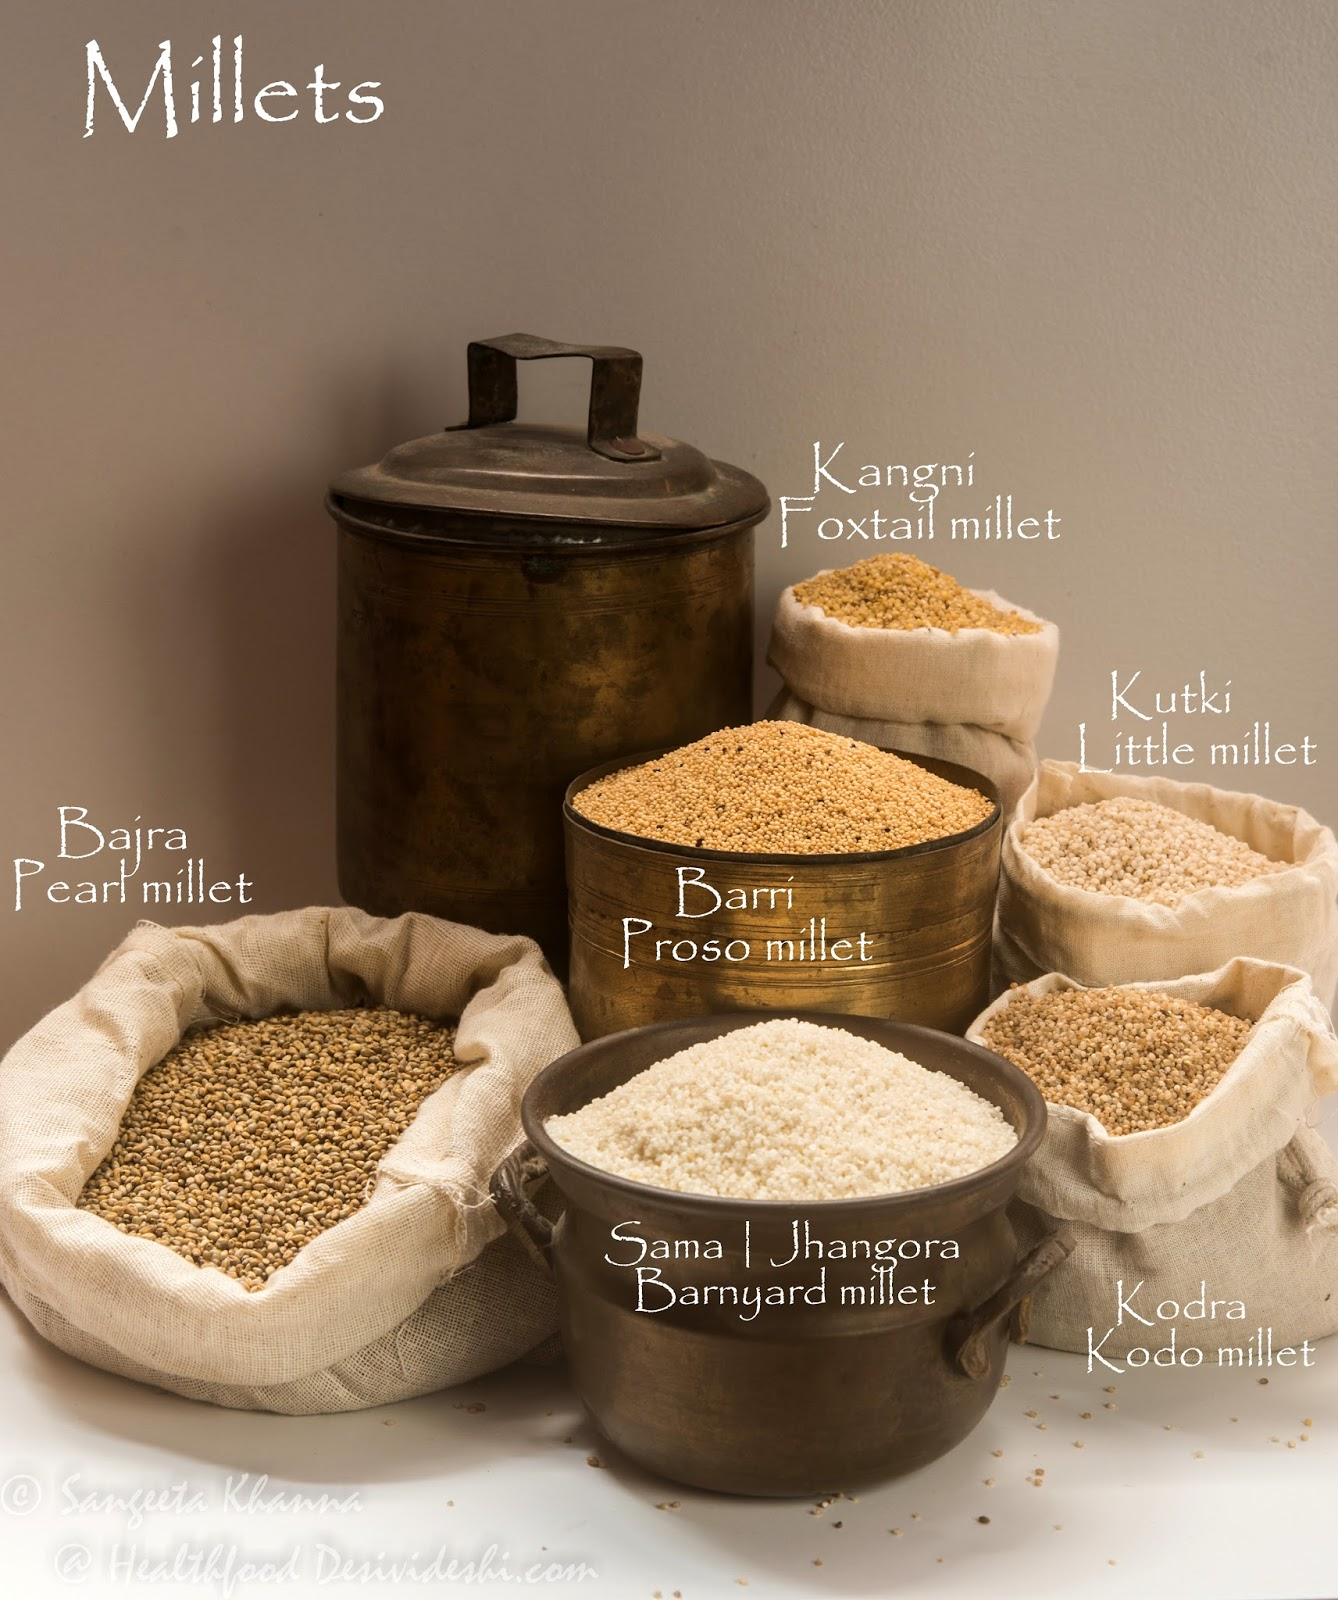 Forum on this topic: Are Millets Good For You What Are , are-millets-good-for-you-what-are/